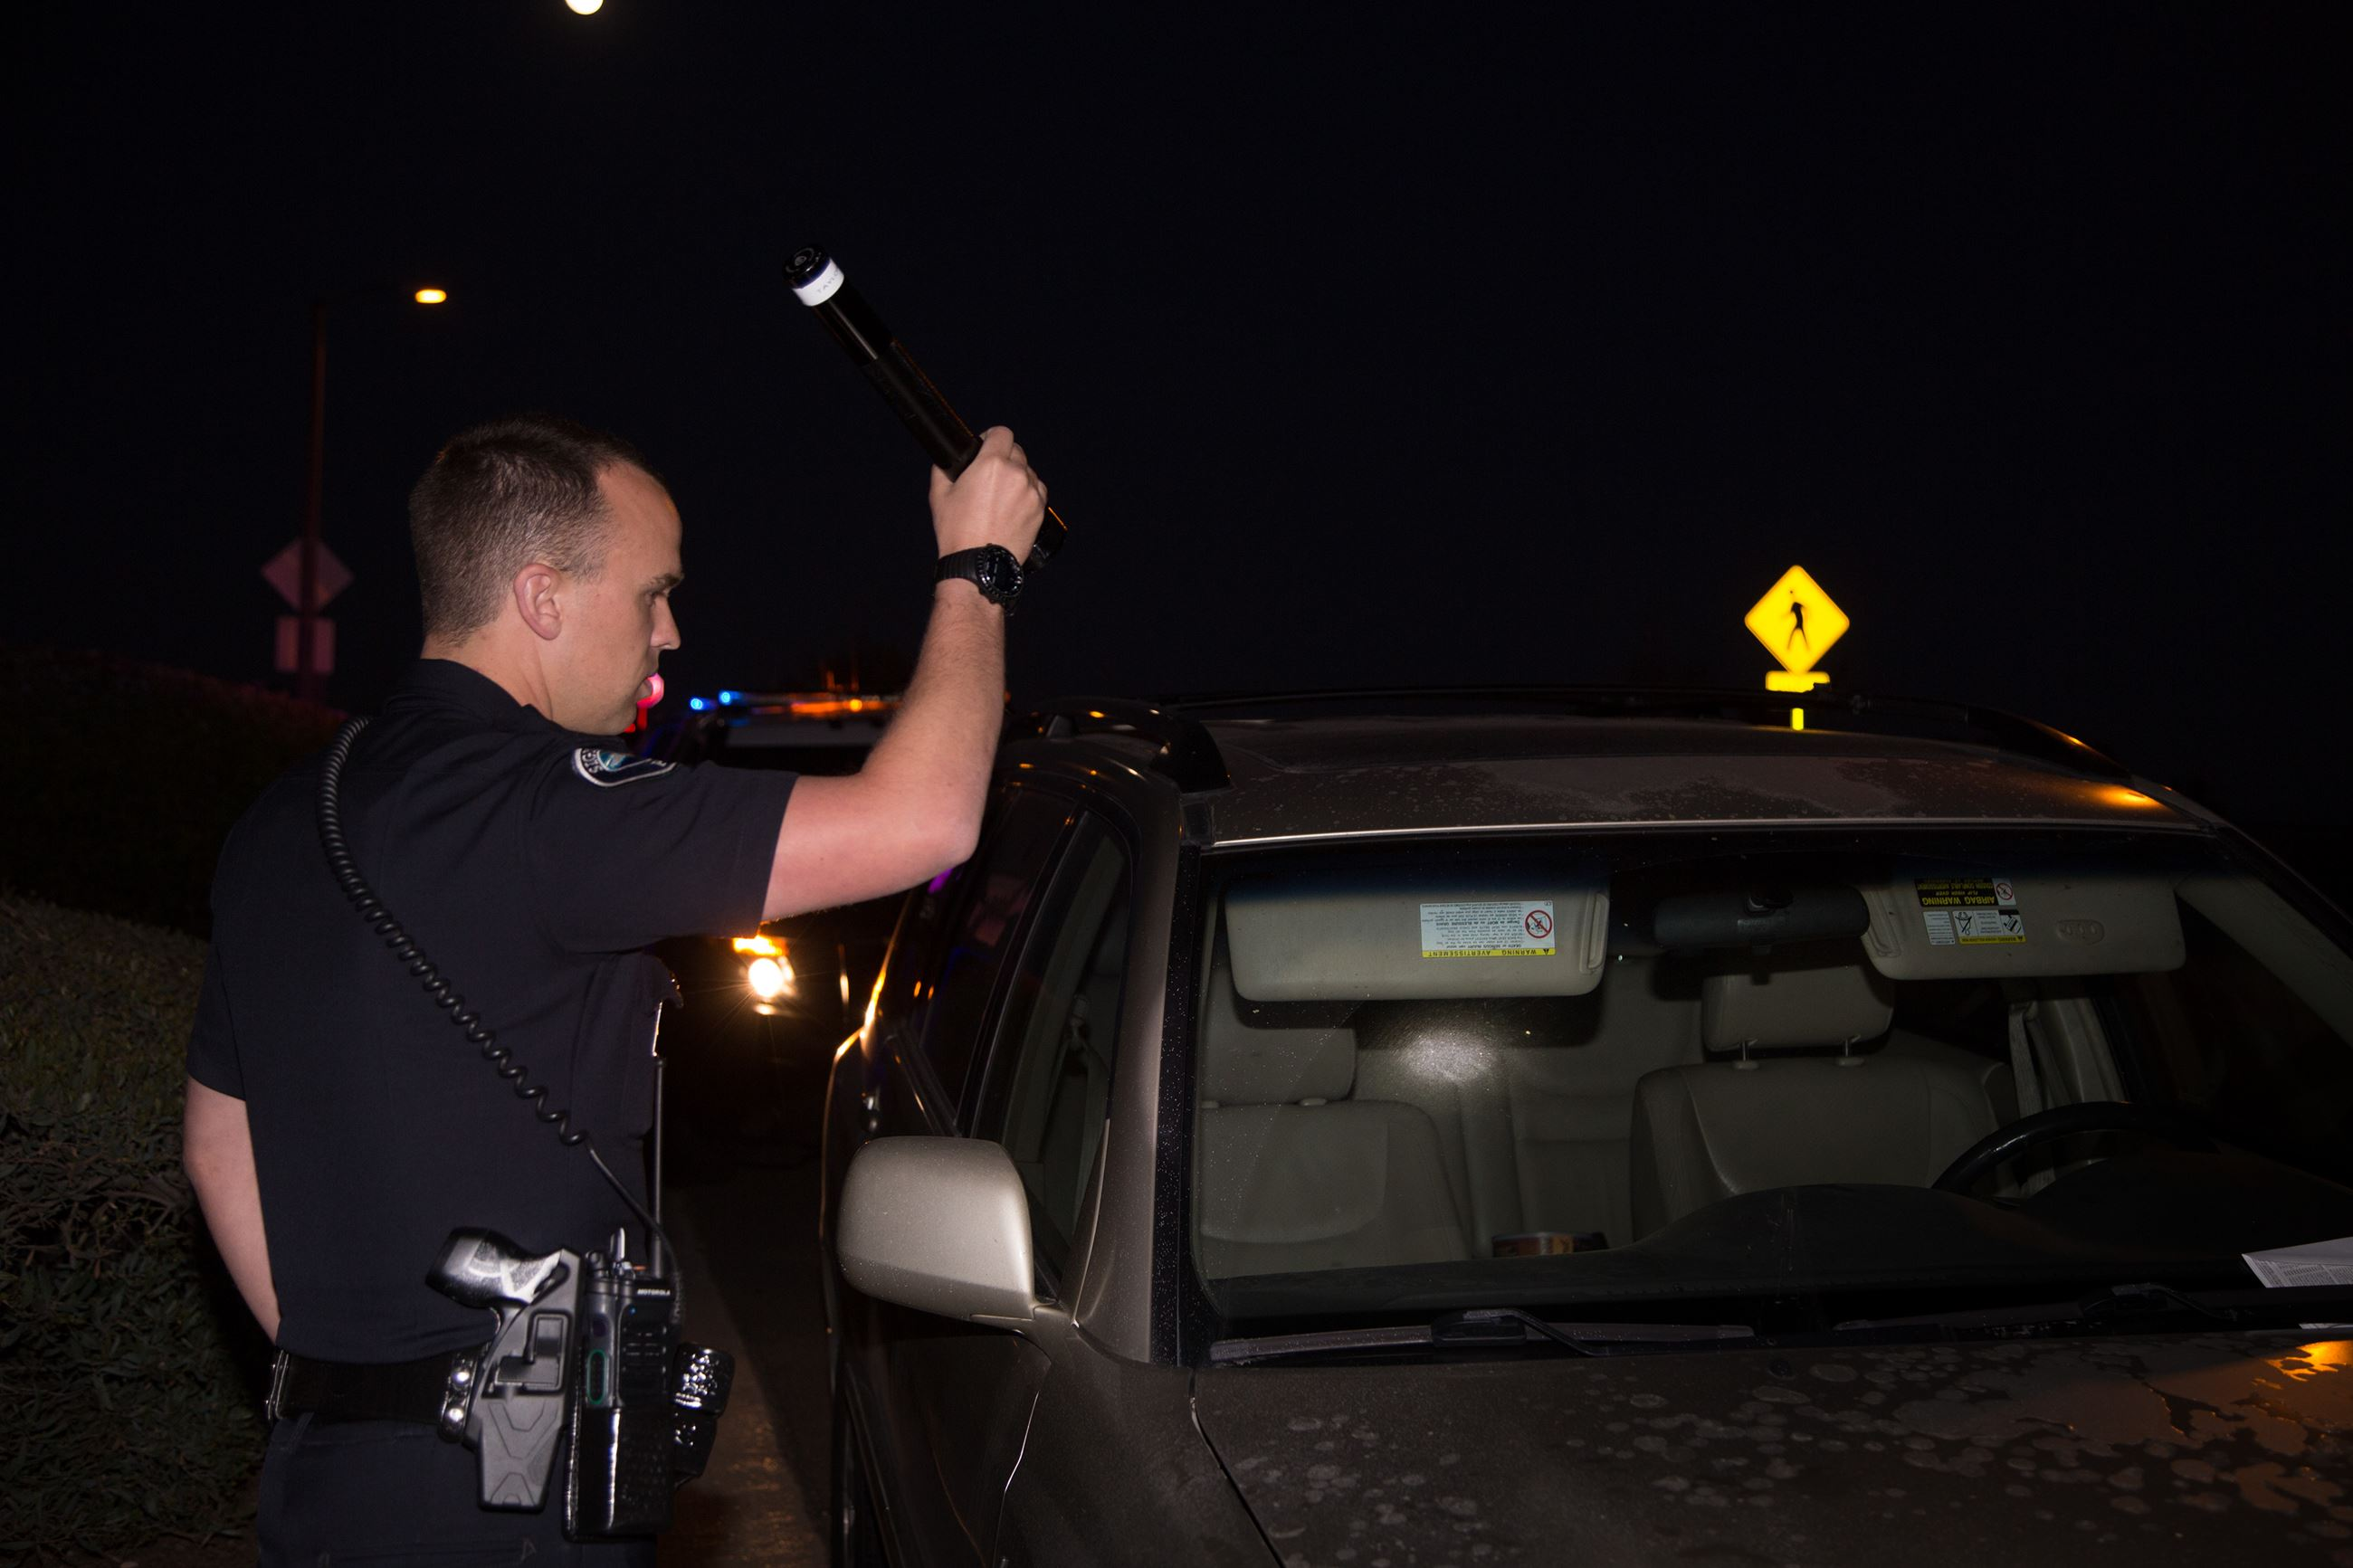 Officer shining a flashlight into a car